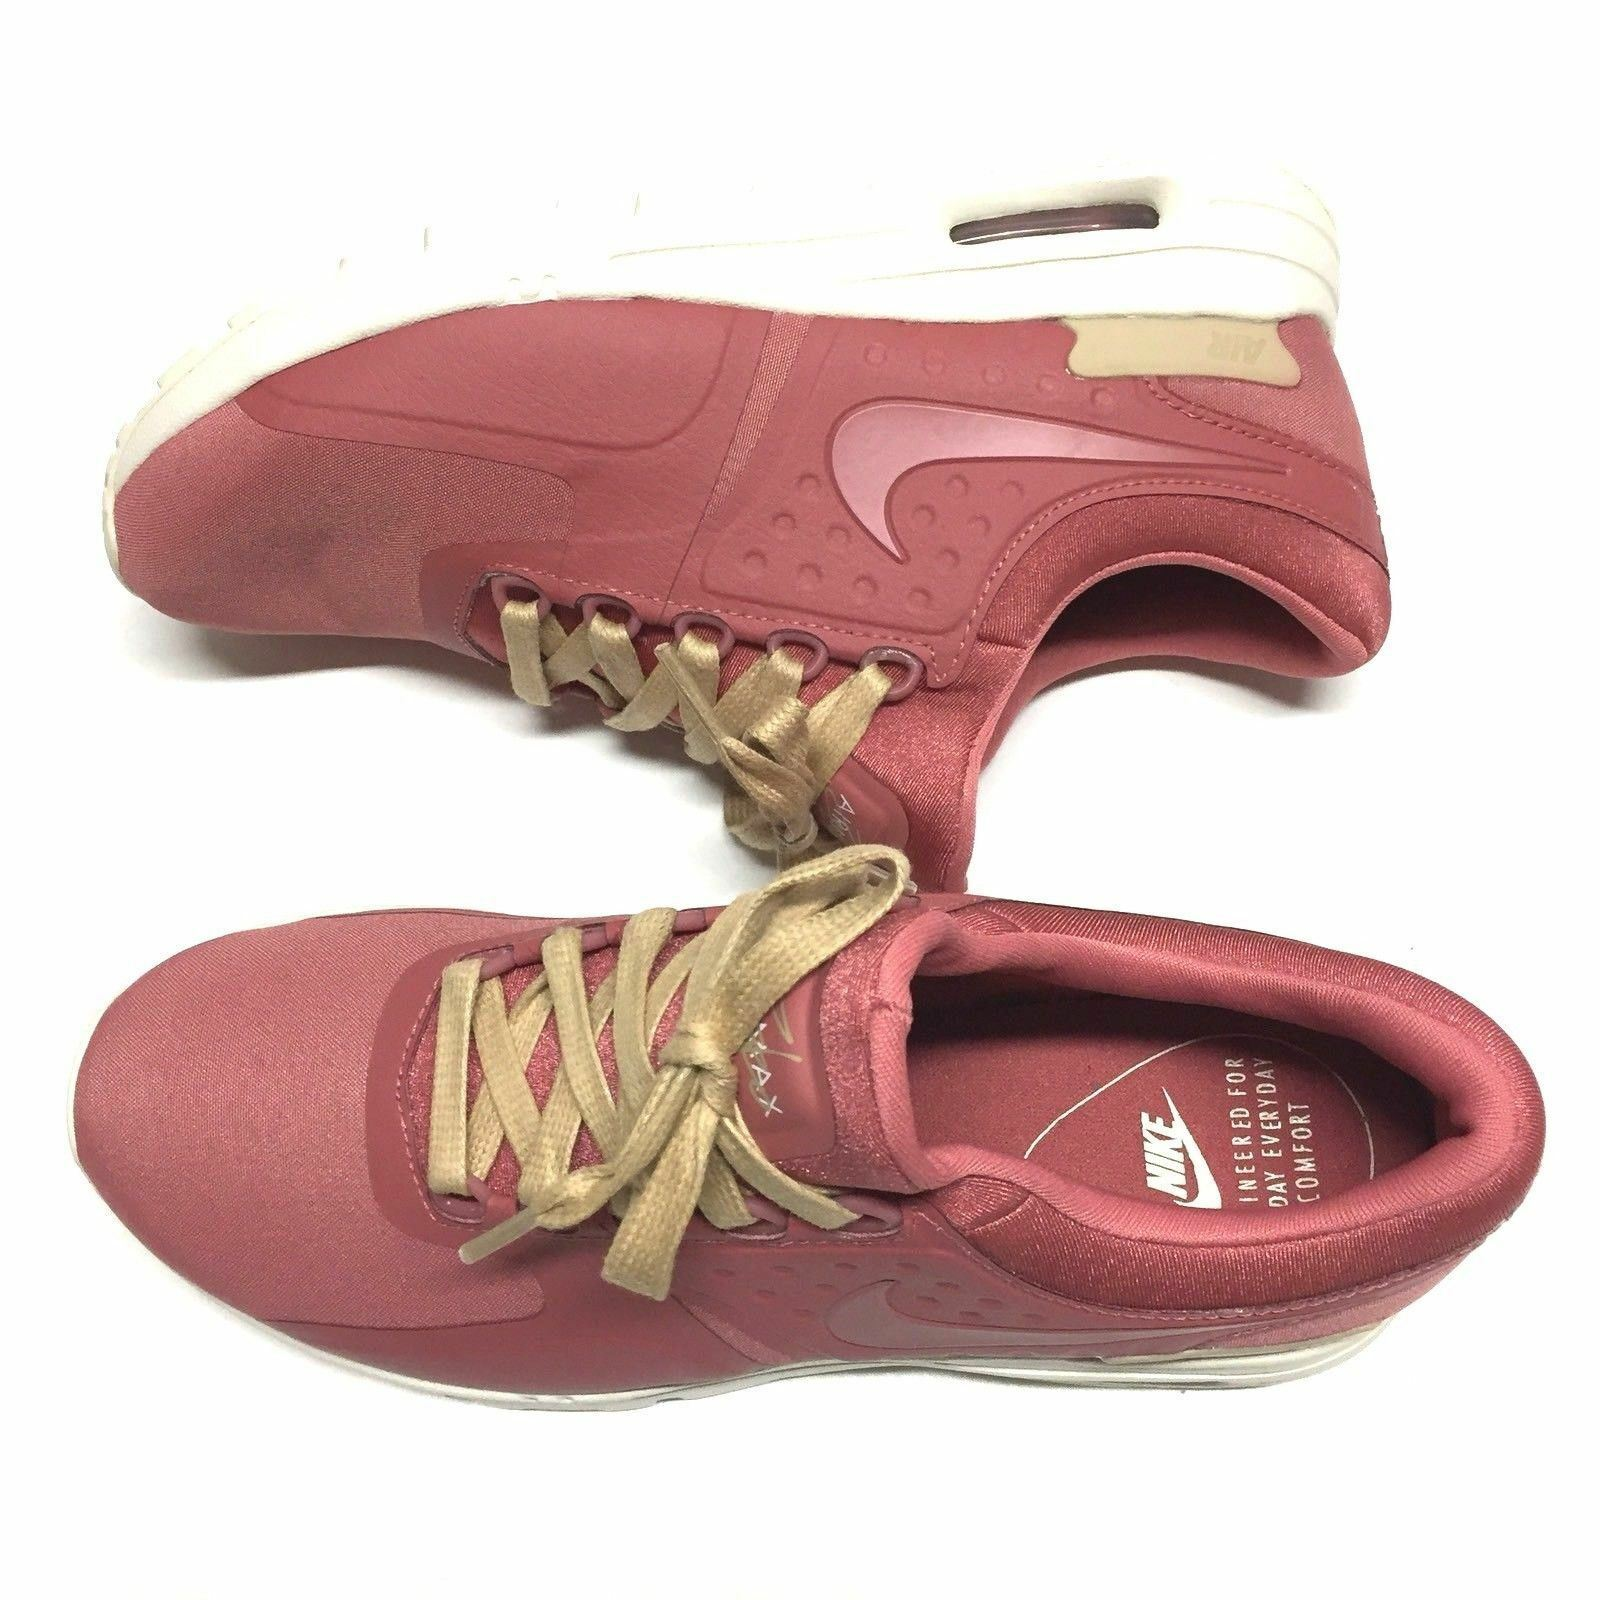 cheap for discount 60d2c 856e9 Nike Nike Nike Air Max Zero Sz 7 CS AA3170 800 Women s shoes Light Redwood  75a81a